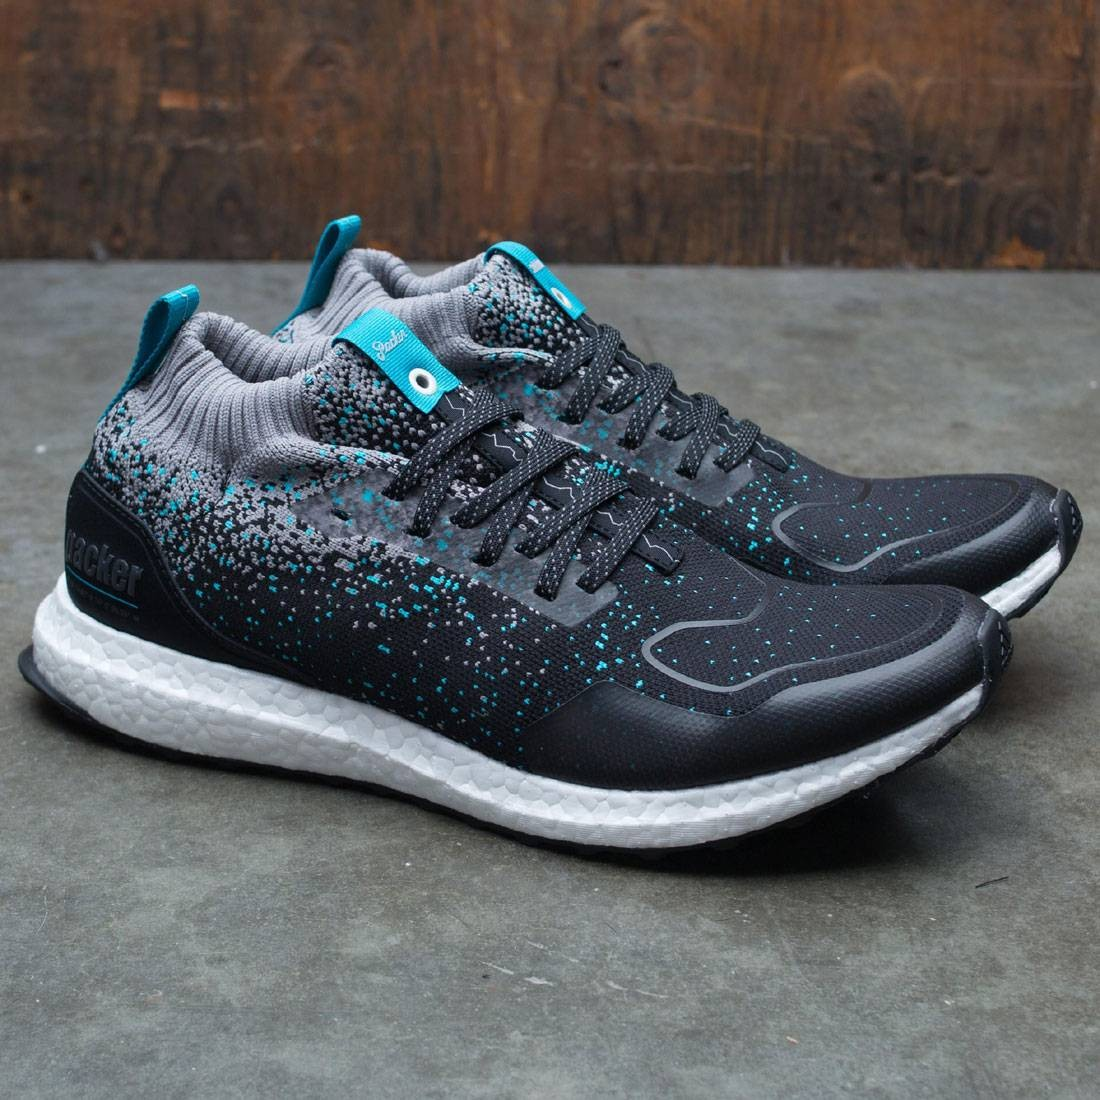 8655a9bbeed Adidas Consortium x Packer x Solebox Men UltraBOOST Mid Sneaker Exchange  (black / core black / energy blue)